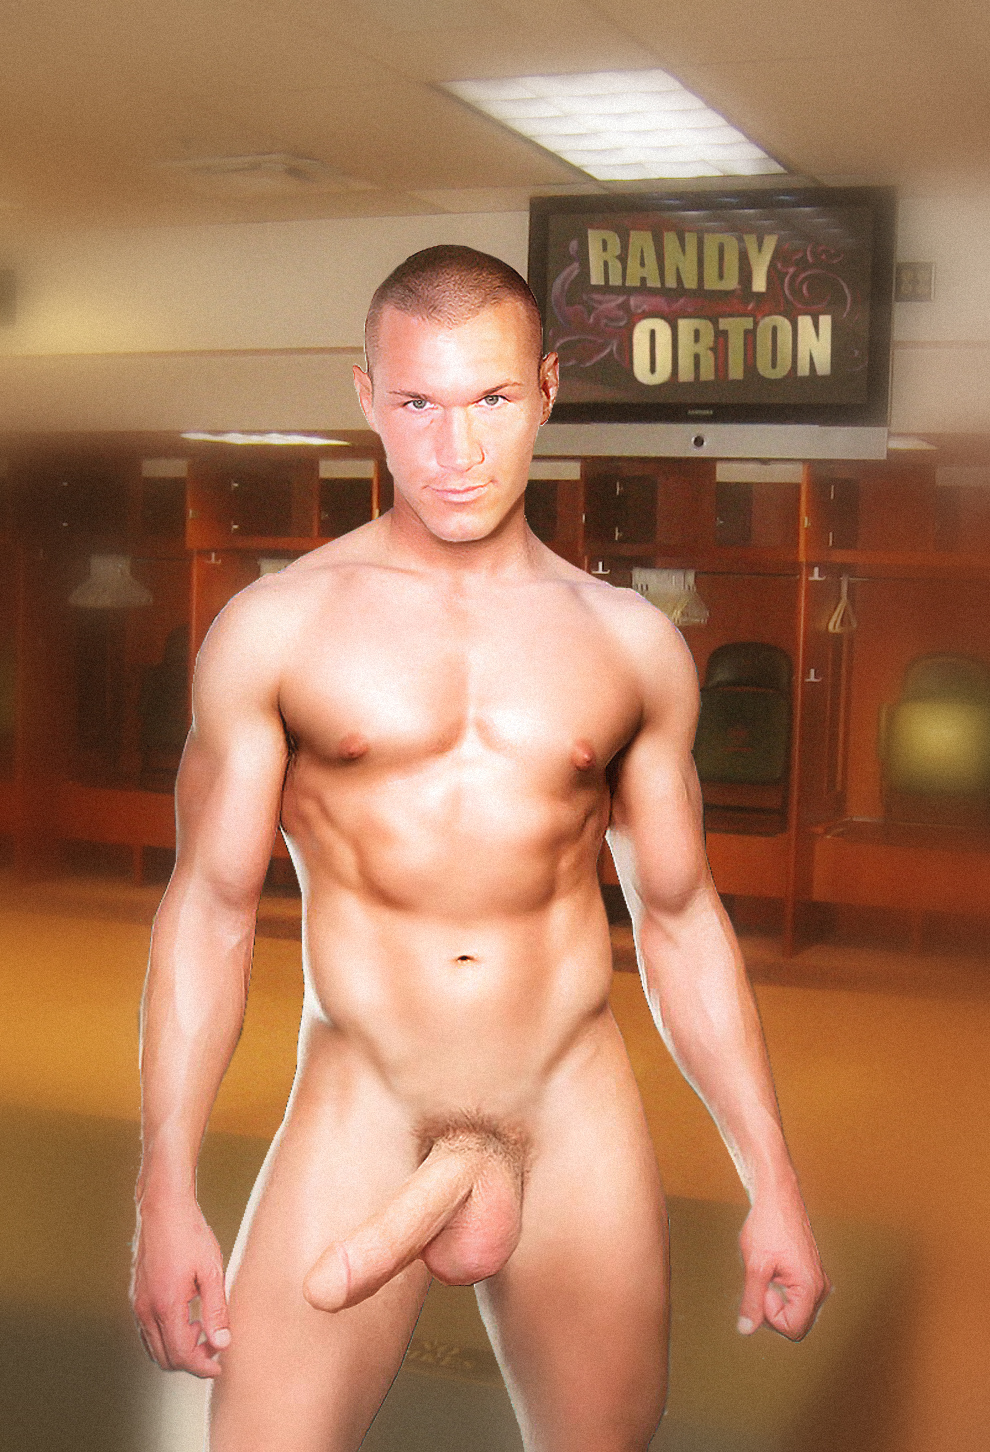 from Bradley randy orton gay